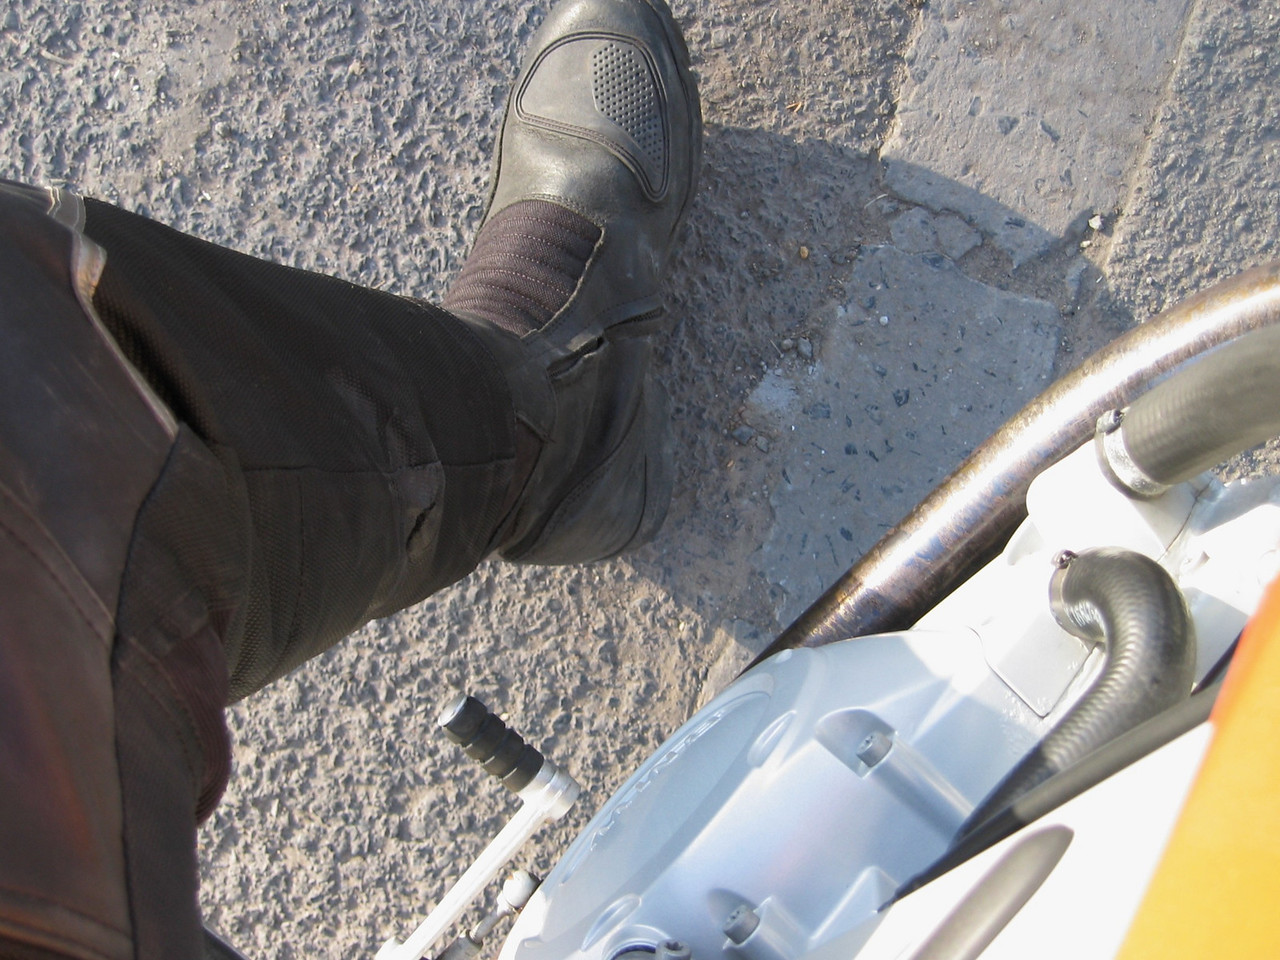 F*ck... I just burt a hole in my trousers on the exhaust.